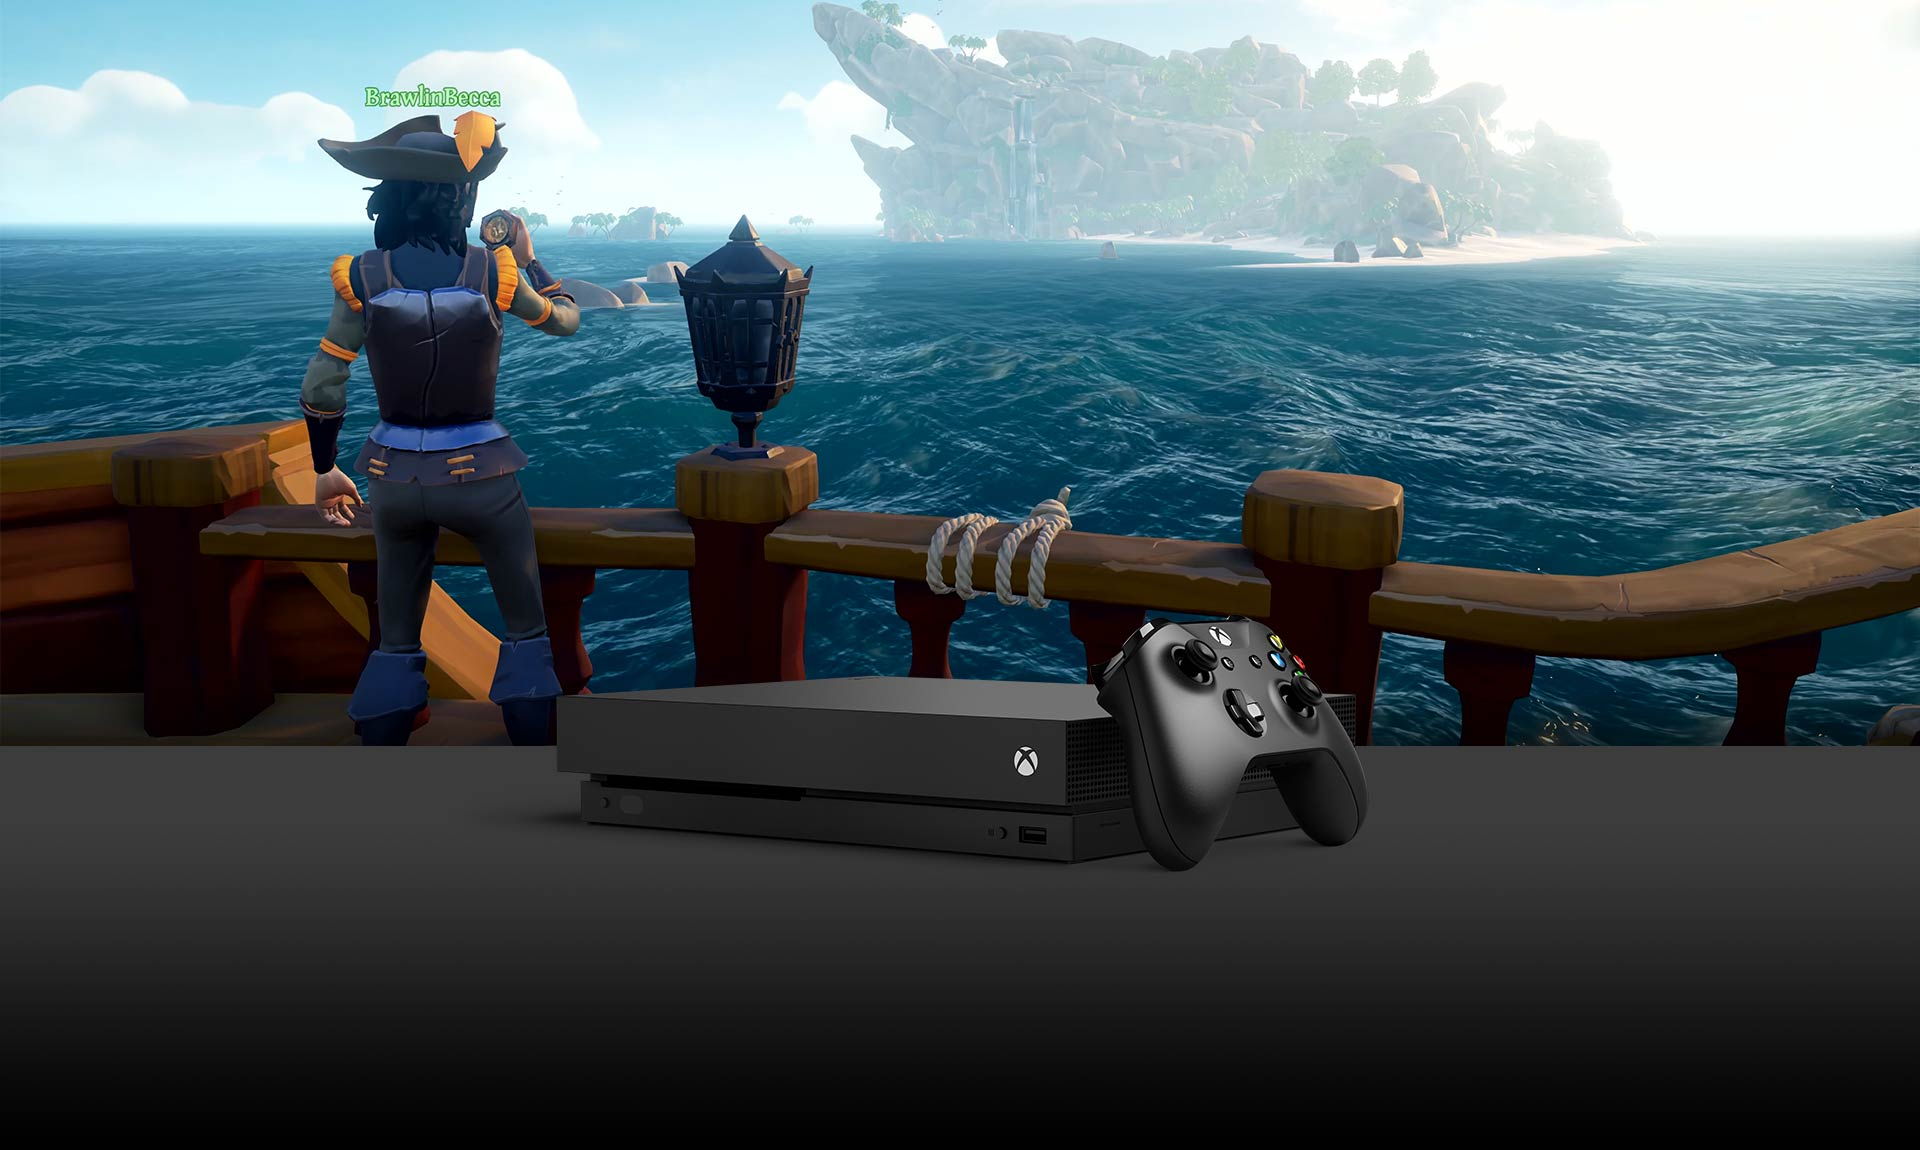 Pirate on a ship looking at an island in the distance, Xbox One X console in the foreground